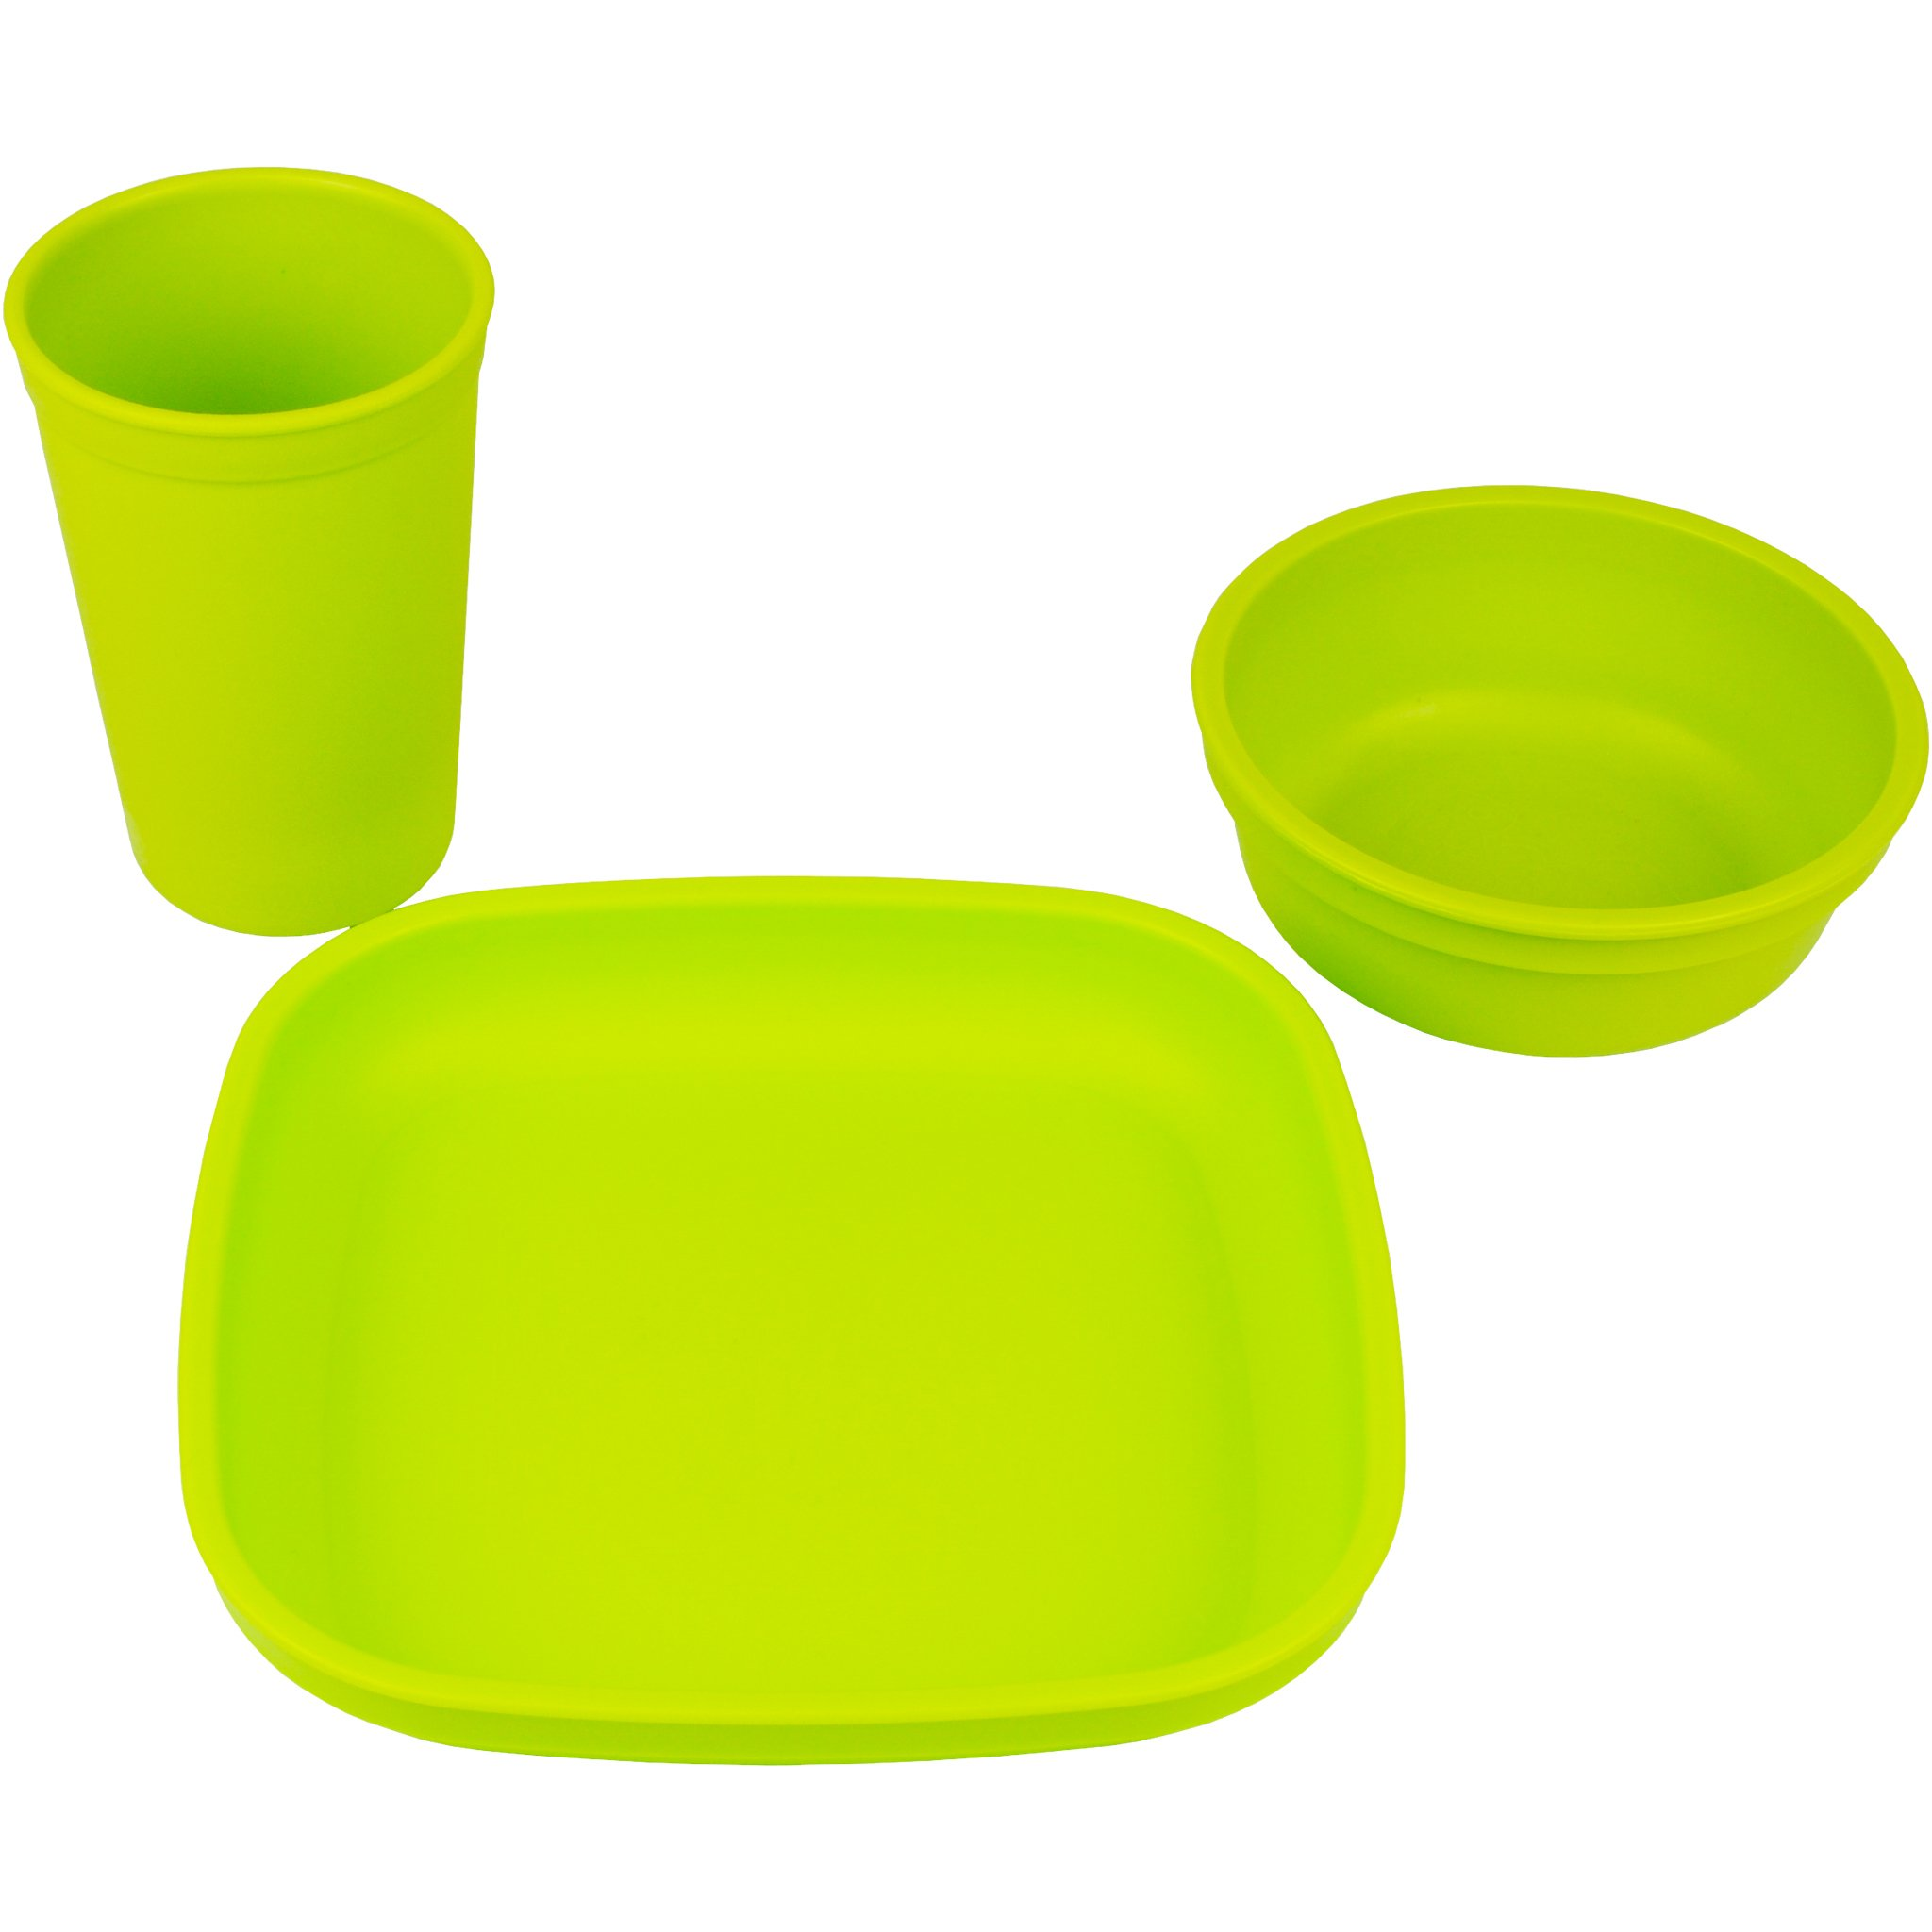 Re-Play Made in the USA Dinnerware Set for Toddlers and Children - Drinking Cup  sc 1 st  Amazon.com & Amazon.com: Re-Play Made in the USA Dinnerware Set for Toddlers and ...